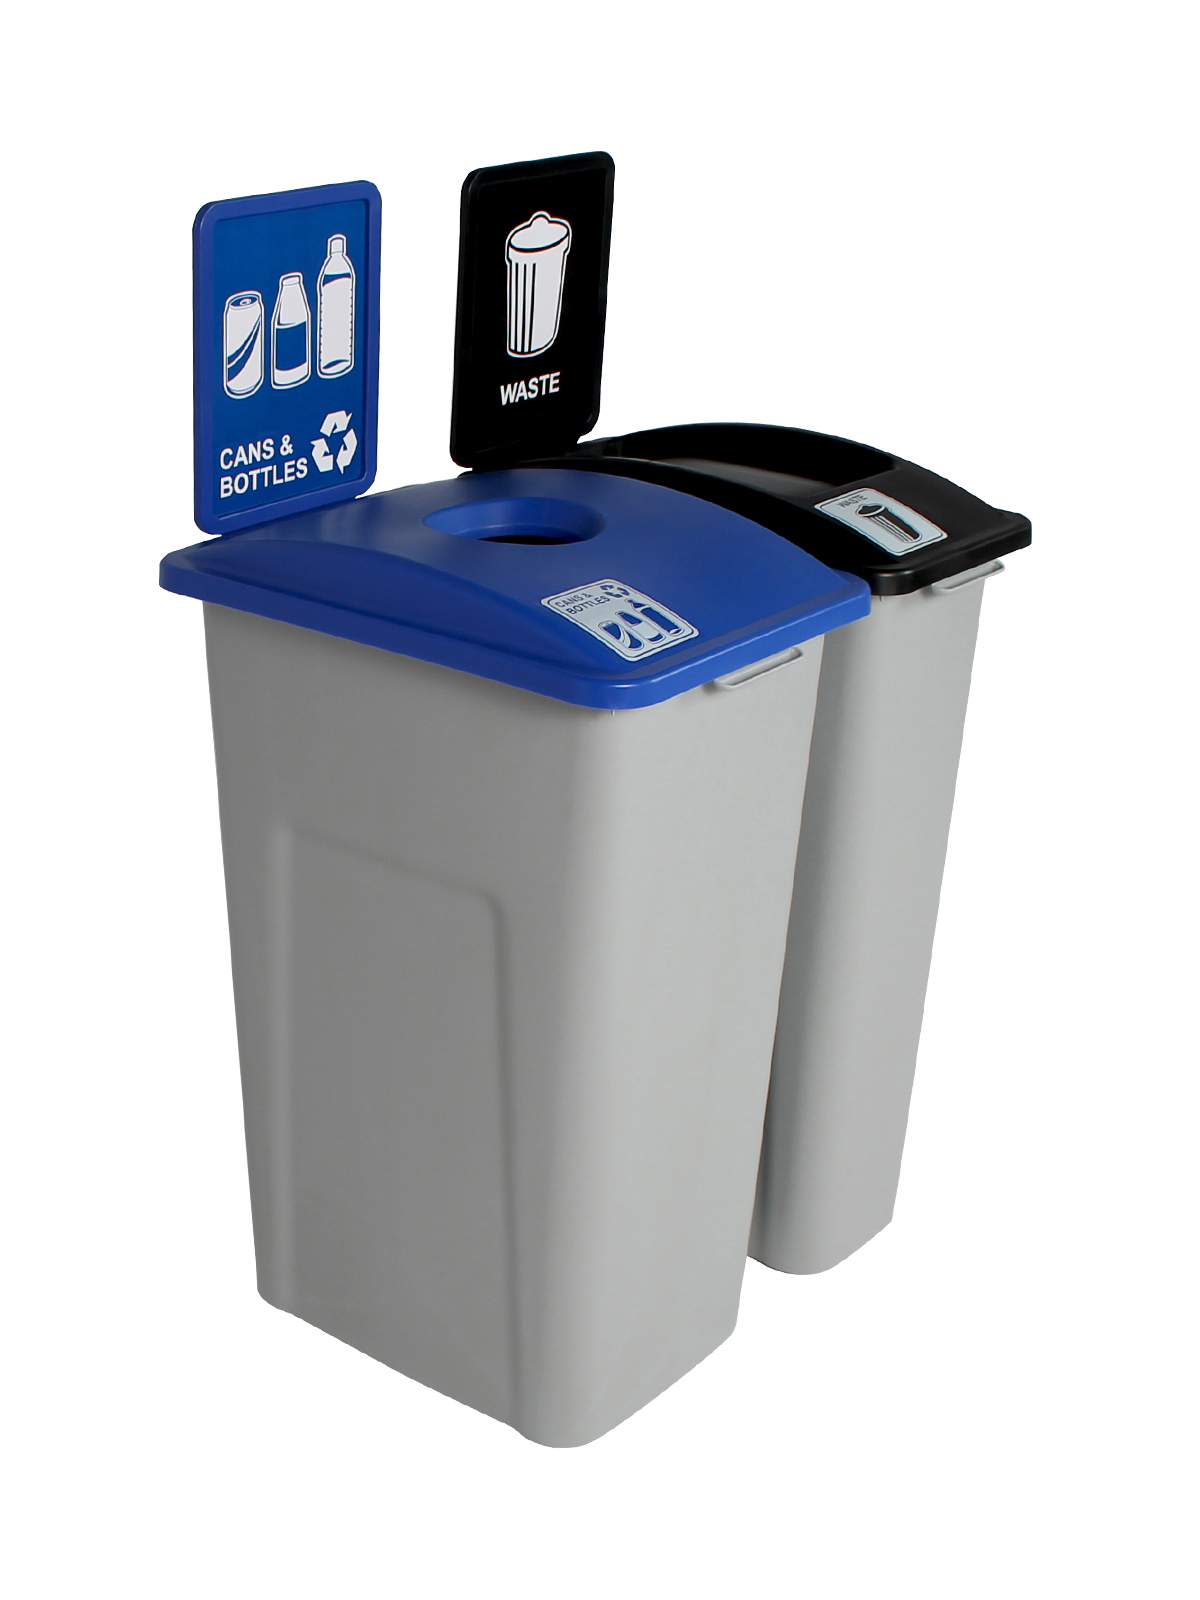 WASTE WATCHER XL - Double - Cans & Bottles-Waste - Circle-Full - Grey-Blue-Black